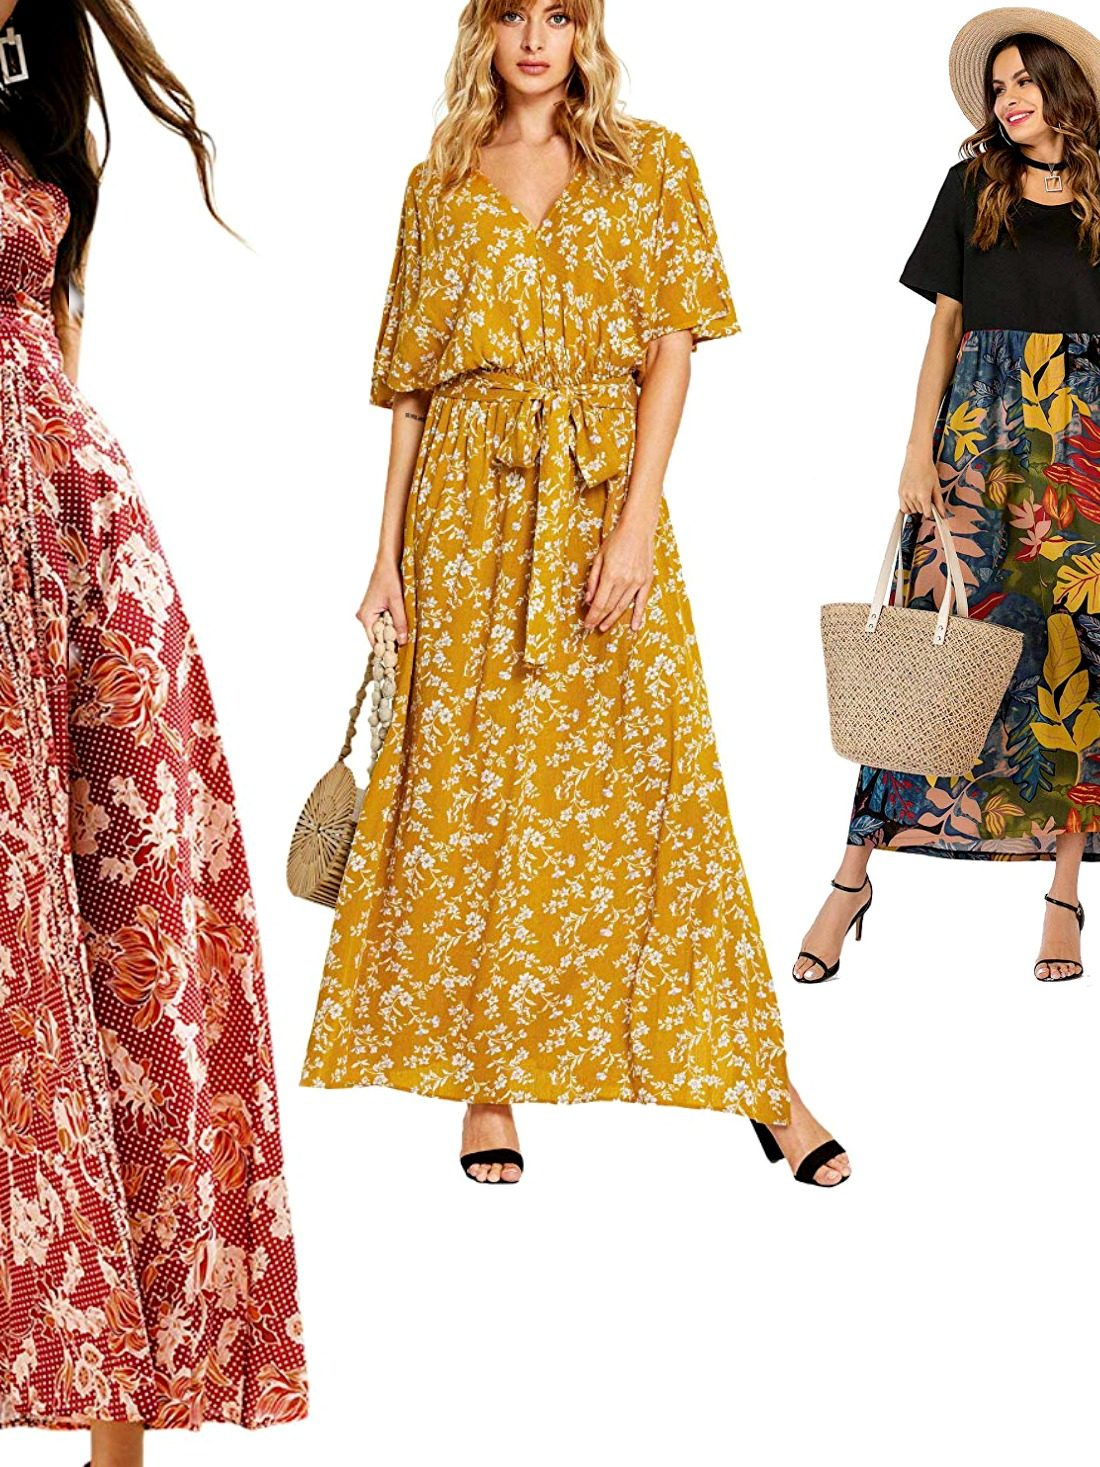 bbab6b5cab Floral Maxi Dress: Best Options You Need In Your Summer Wardrobe!